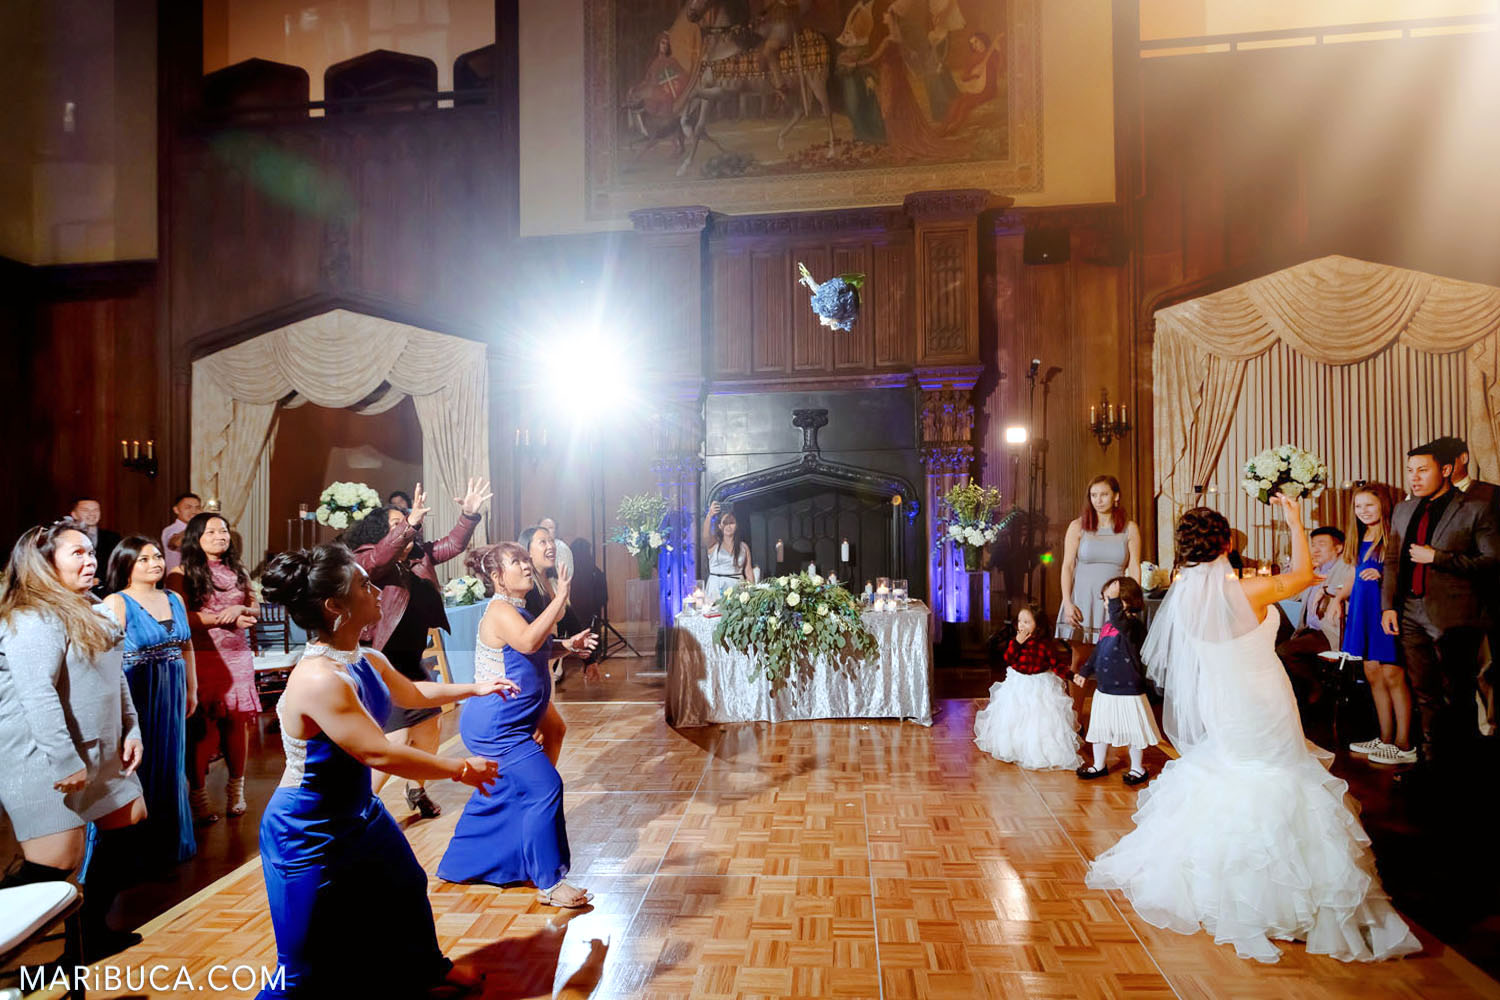 The bride tosses wedding bouquet to friends and bridesmaids in the Great Hall, Kohl Mansion, Burlingame